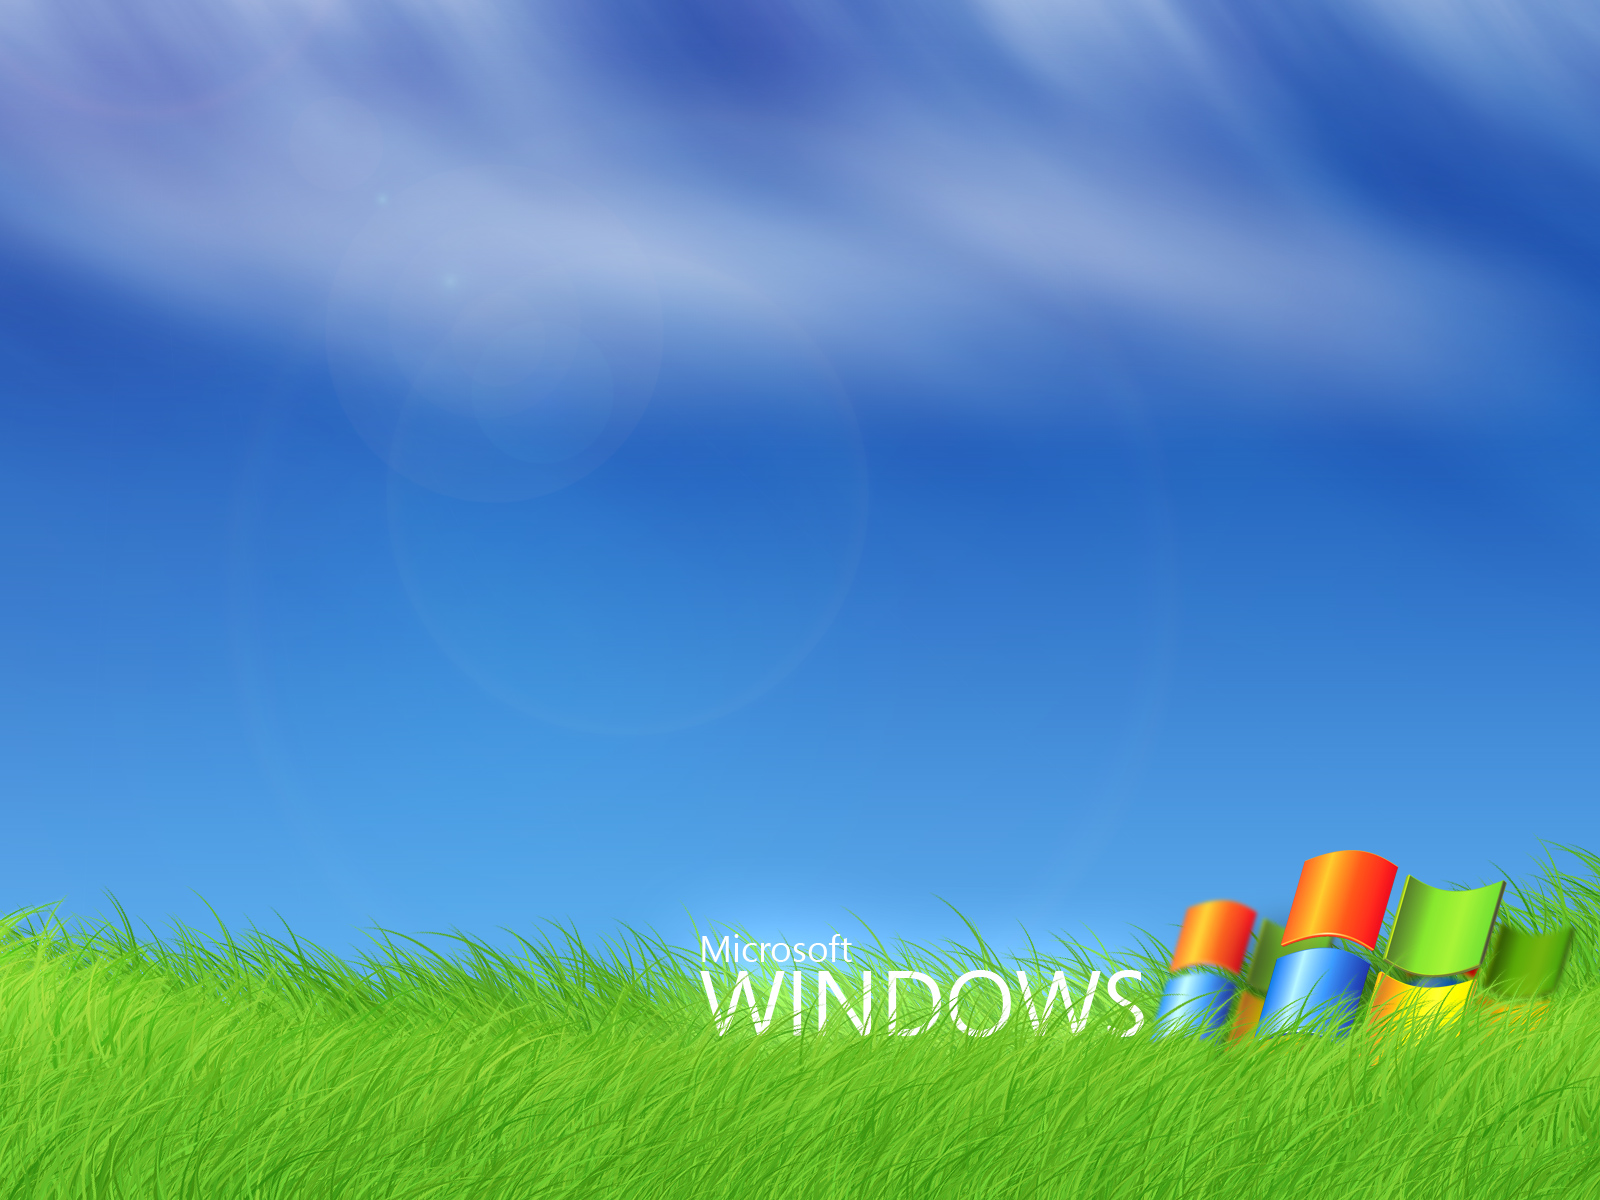 Microsoft Windows Wallpapers HD Wallpapers 1600x1200